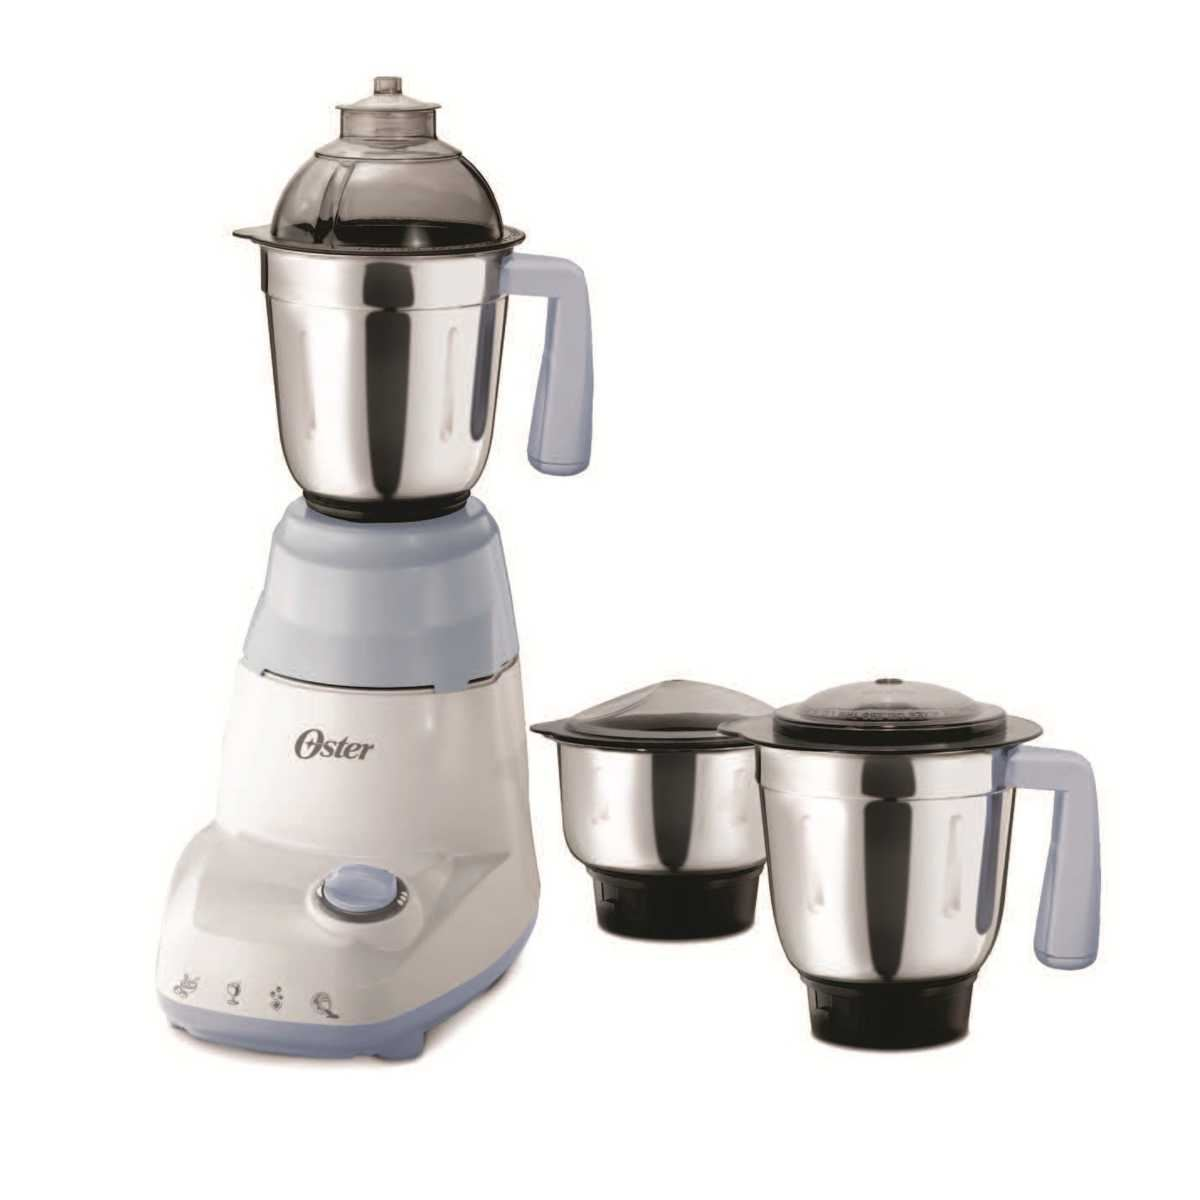 Picture of Oster Mixer Grinder MGSTSL 6001- 449